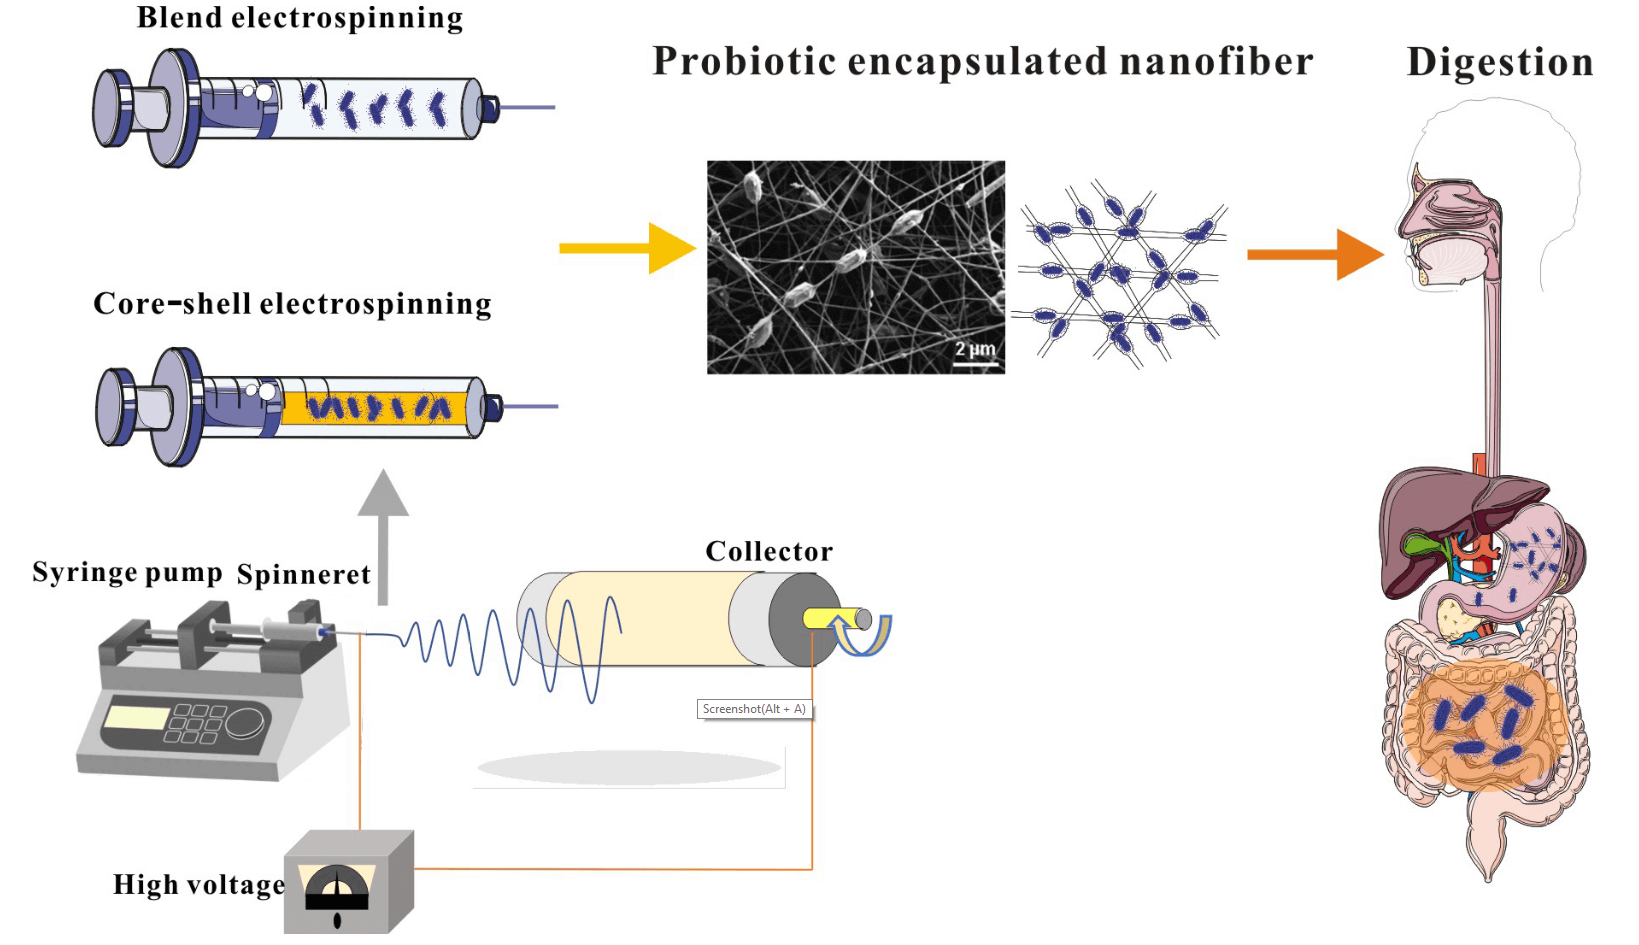 Recent Advances in Probiotics Encapsulation by Electrospinning